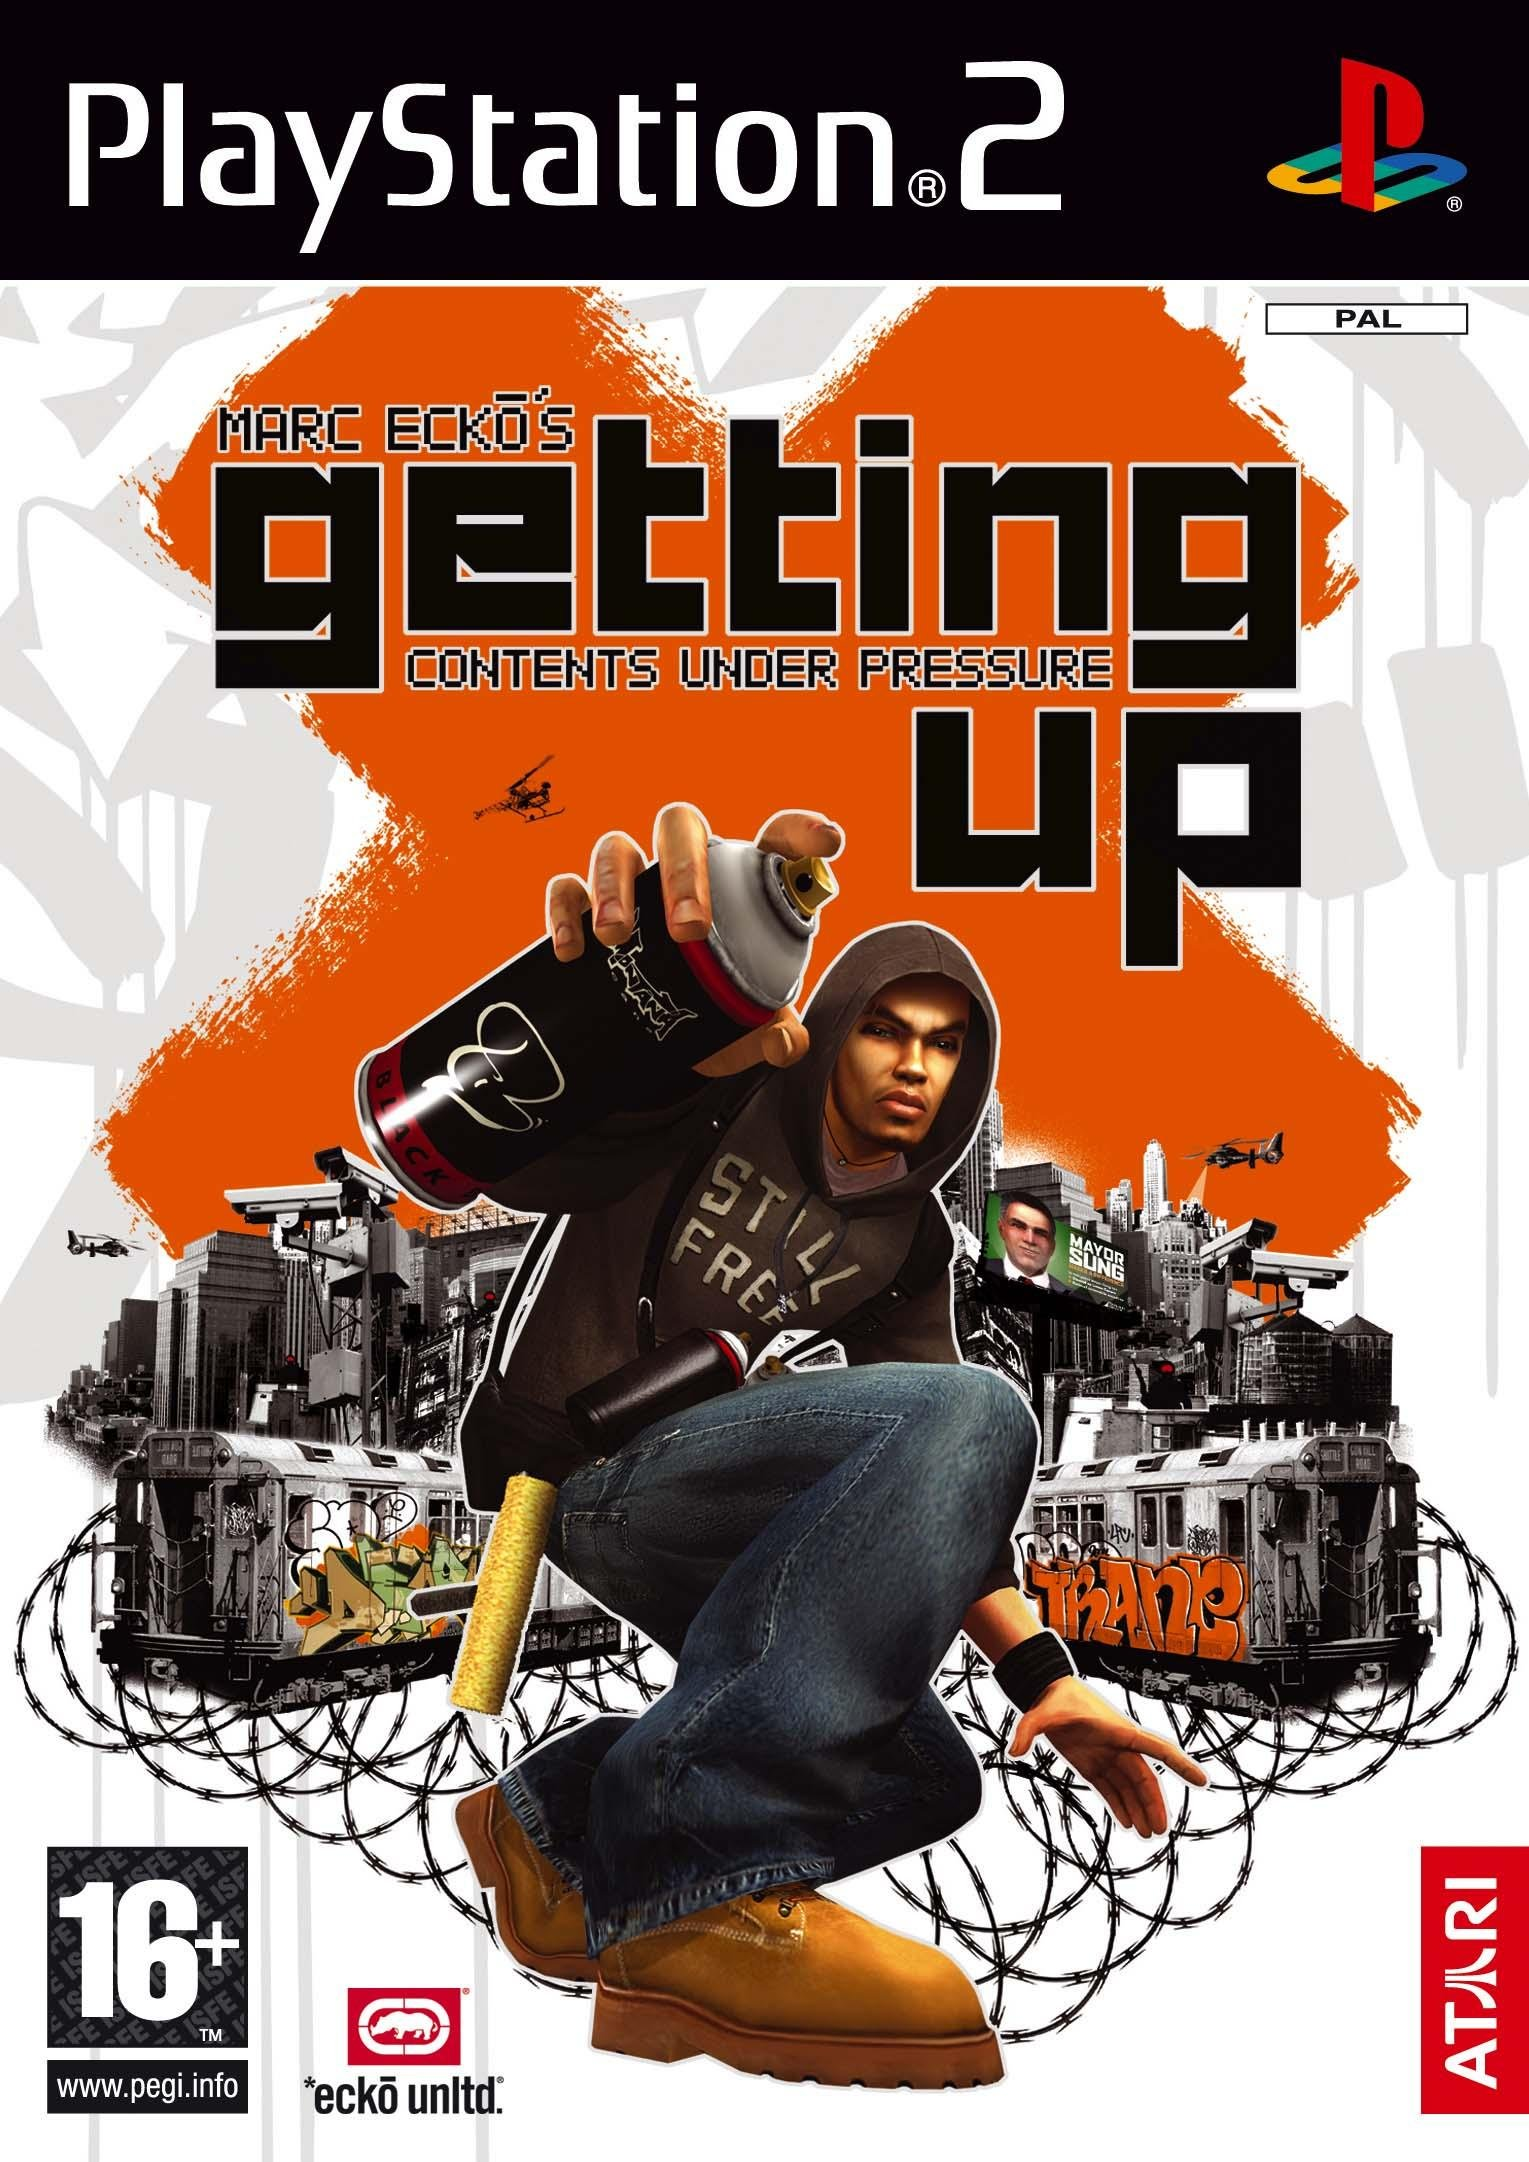 Getting up contents under pressure video game 2005 imdb